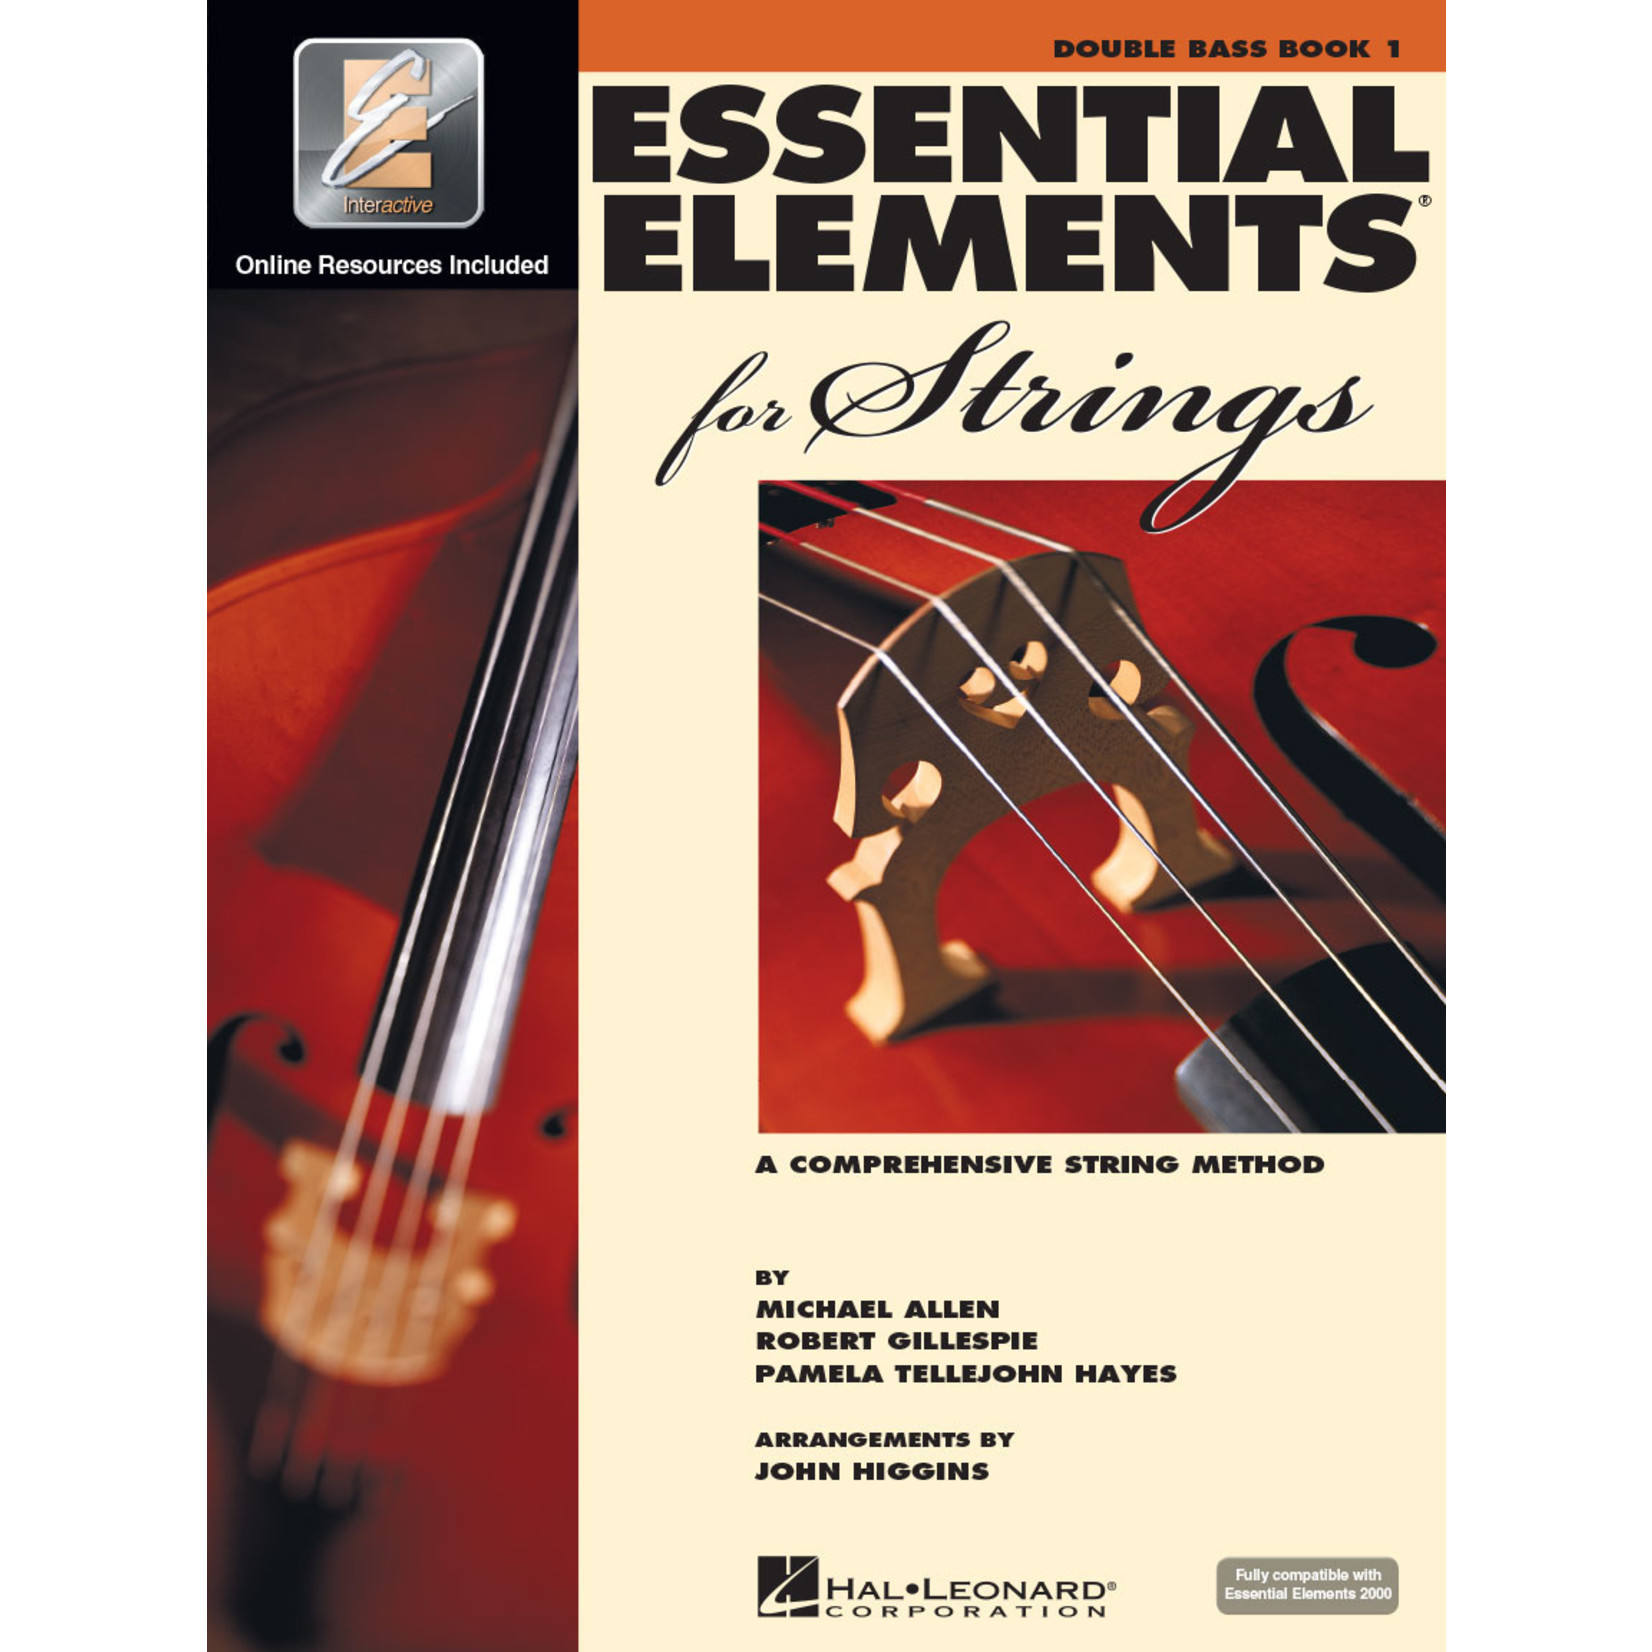 Hal Leonard Essential Elements for Strings Double Bass Book 1